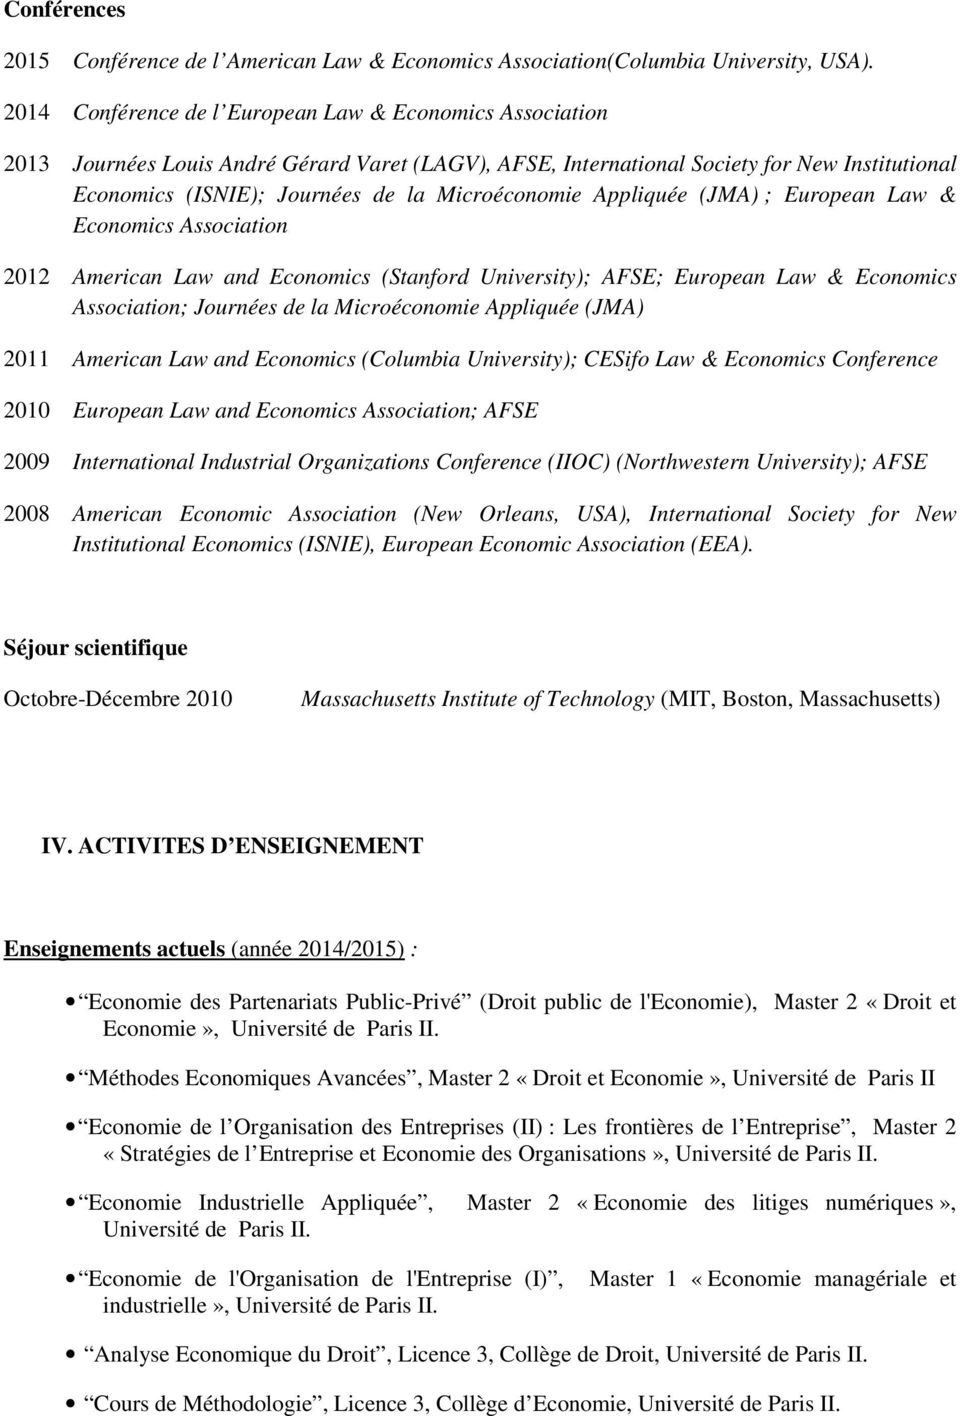 Microéconomie Appliquée (JMA) ; European Law & Economics Association 2012 American Law and Economics (Stanford University); AFSE; European Law & Economics Association; Journées de la Microéconomie